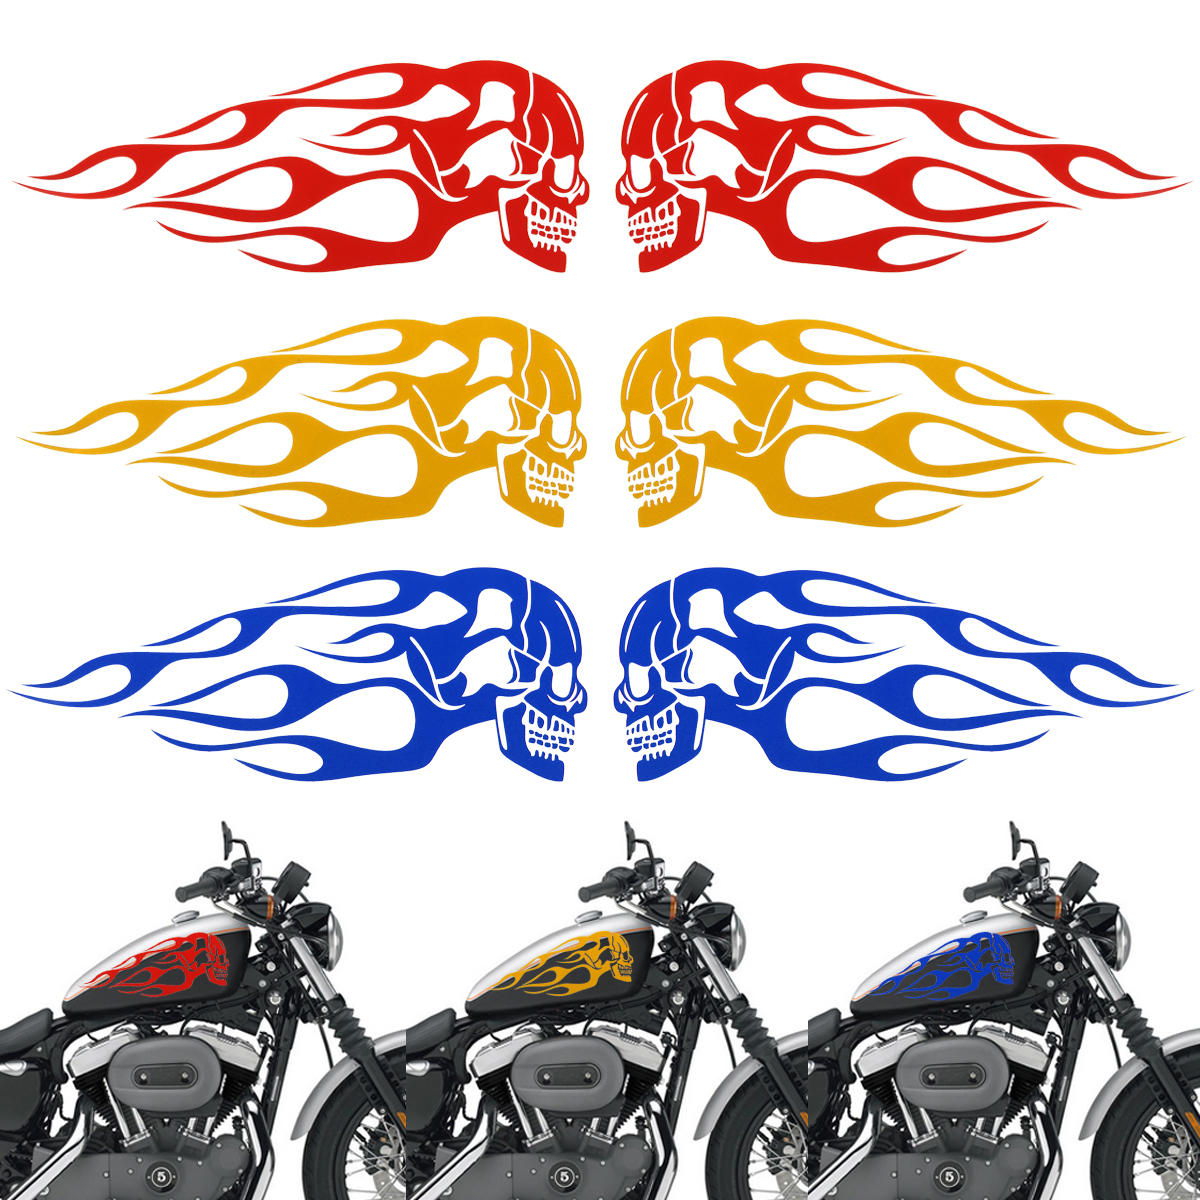 2pcs 13 5x5inch Universal Motorcycle Gas Tank Flames Skull Badge Decal Sticker Red Blue Yellow